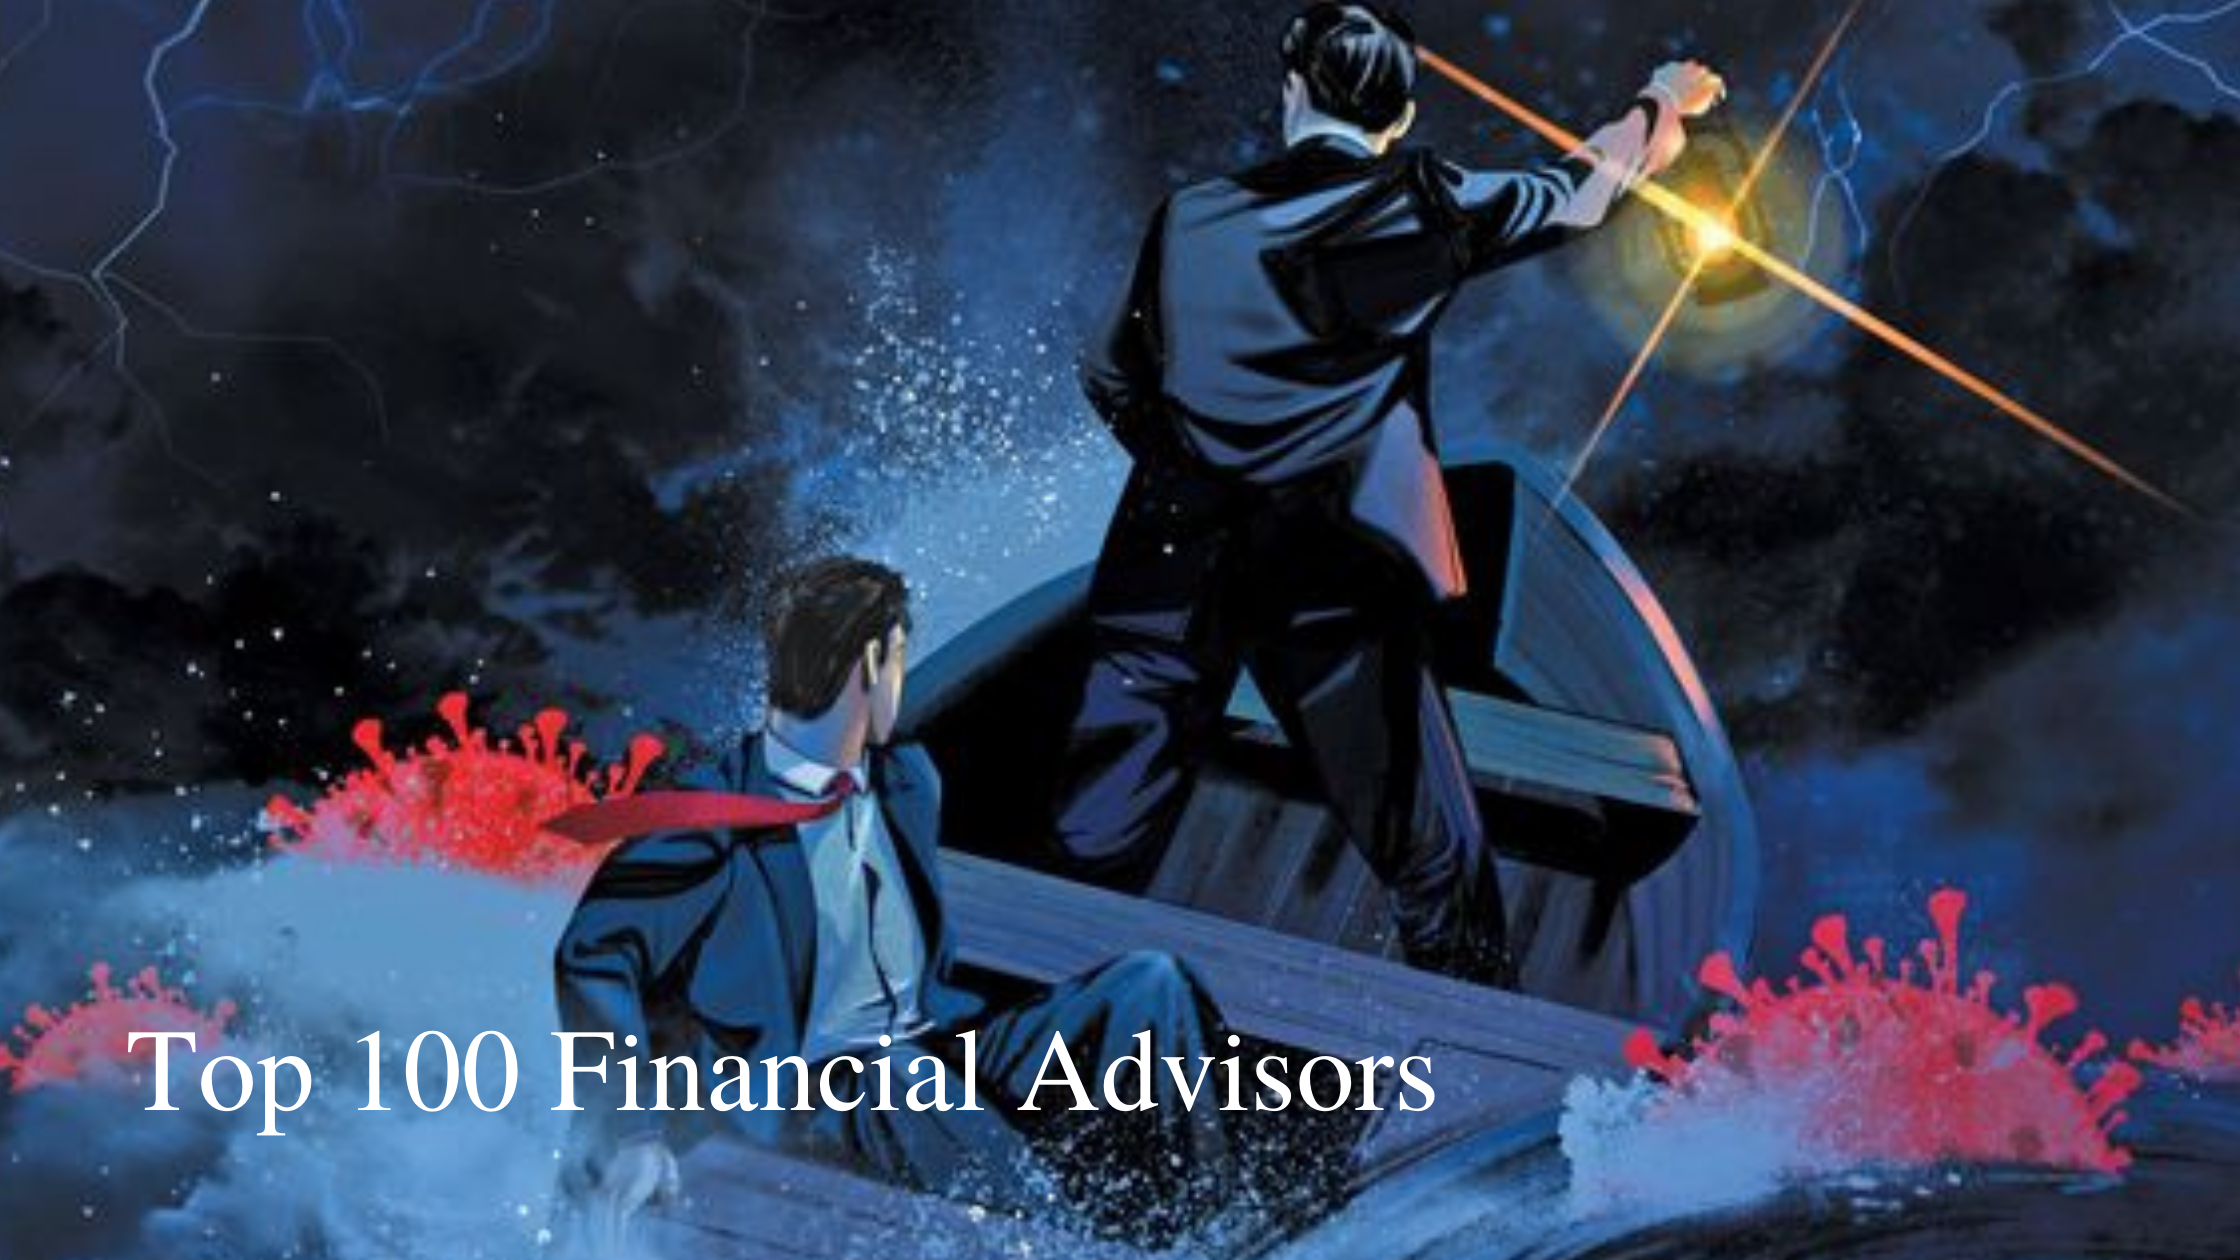 Jonathan Kuttin named to Barron's Top 100 Financial Advisors for 2020